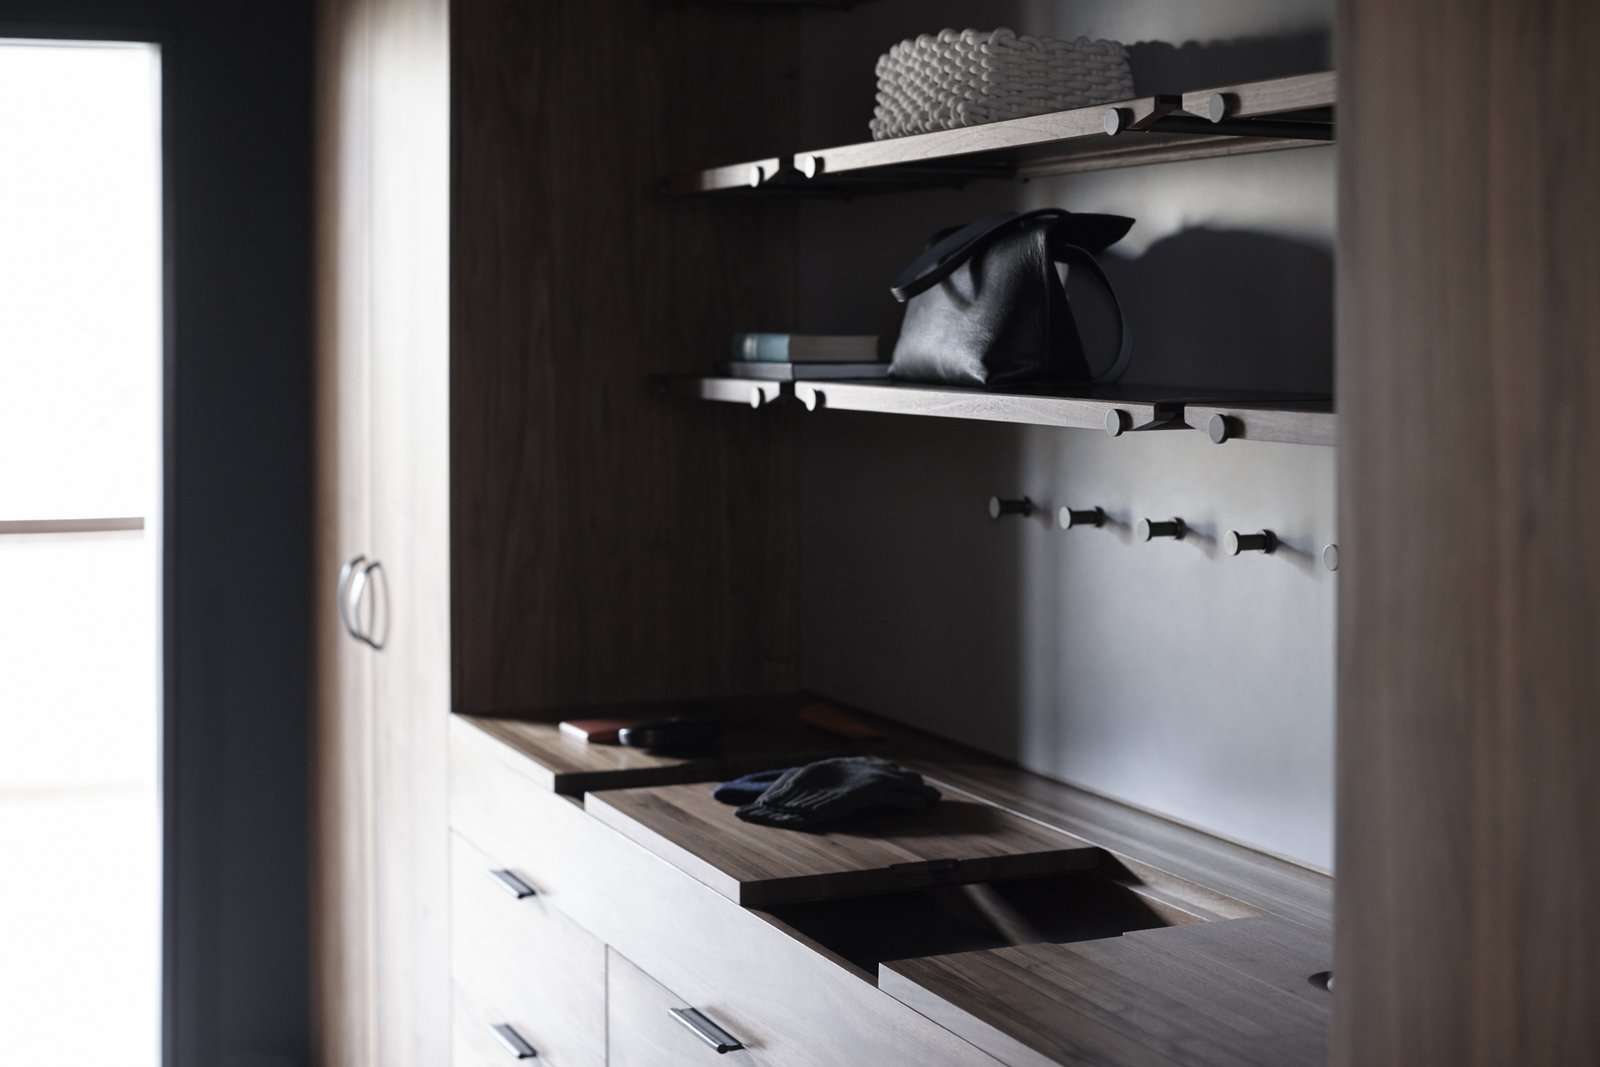 The Wardrobe System features sliding wooden valet trays, leather lined storage compartments, custom interior felt door pockets, handcrafted leather pulls, and an integrated laundry hamper. The Whole House System That Unifies Every Room - Photo 8 of 9